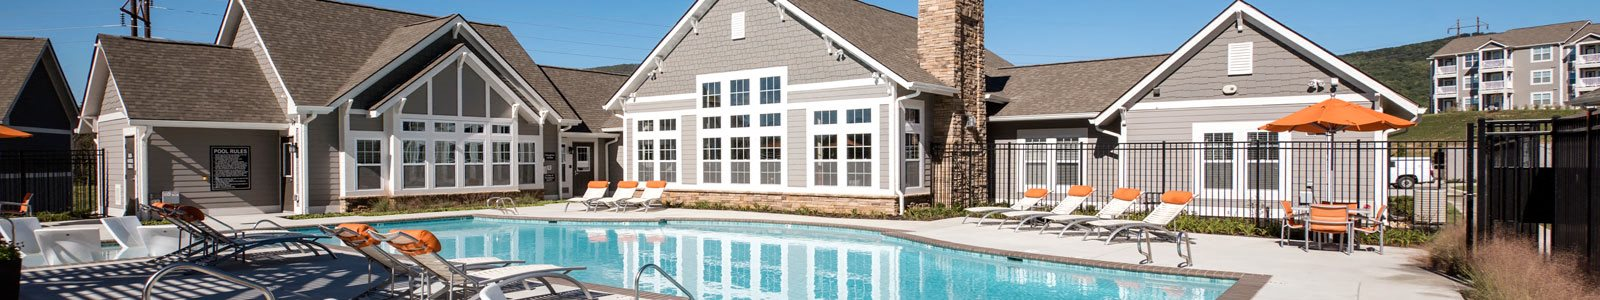 Resort Style Community at River Crossing Apartments, St. Charles, Missouri